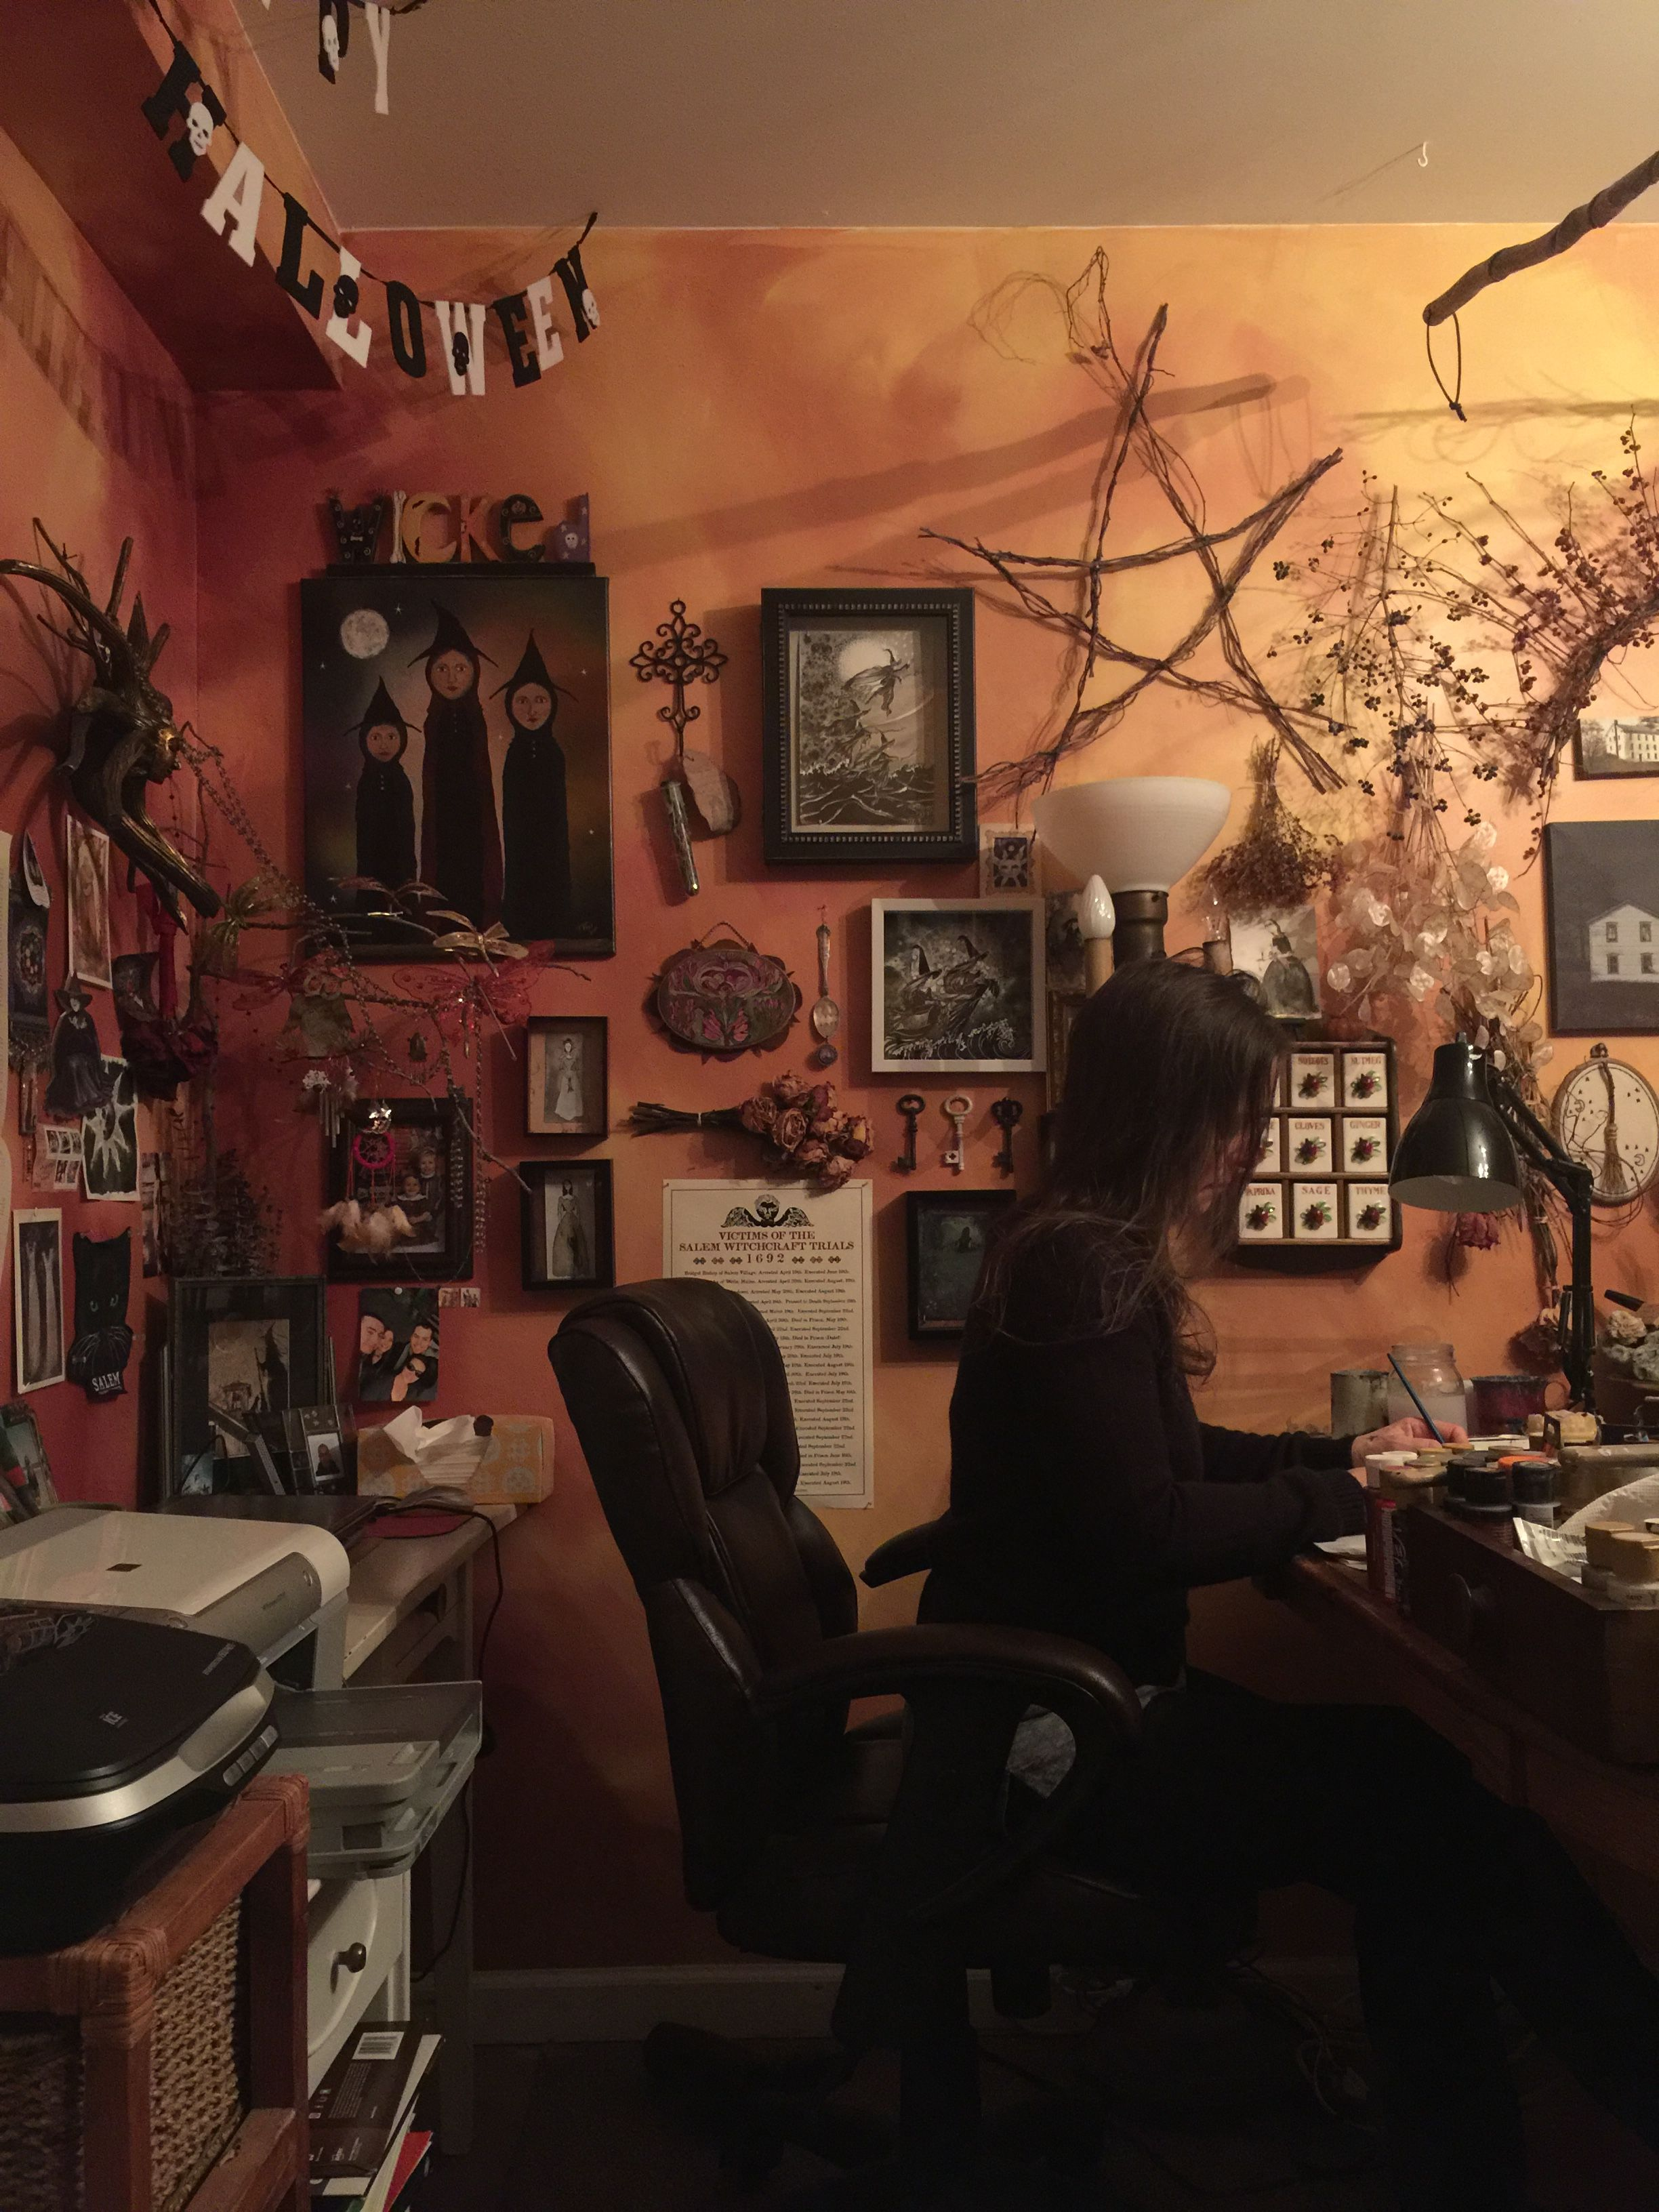 Fabulous Witch Room Decor Anopheles Org Download Free Architecture Designs Rallybritishbridgeorg